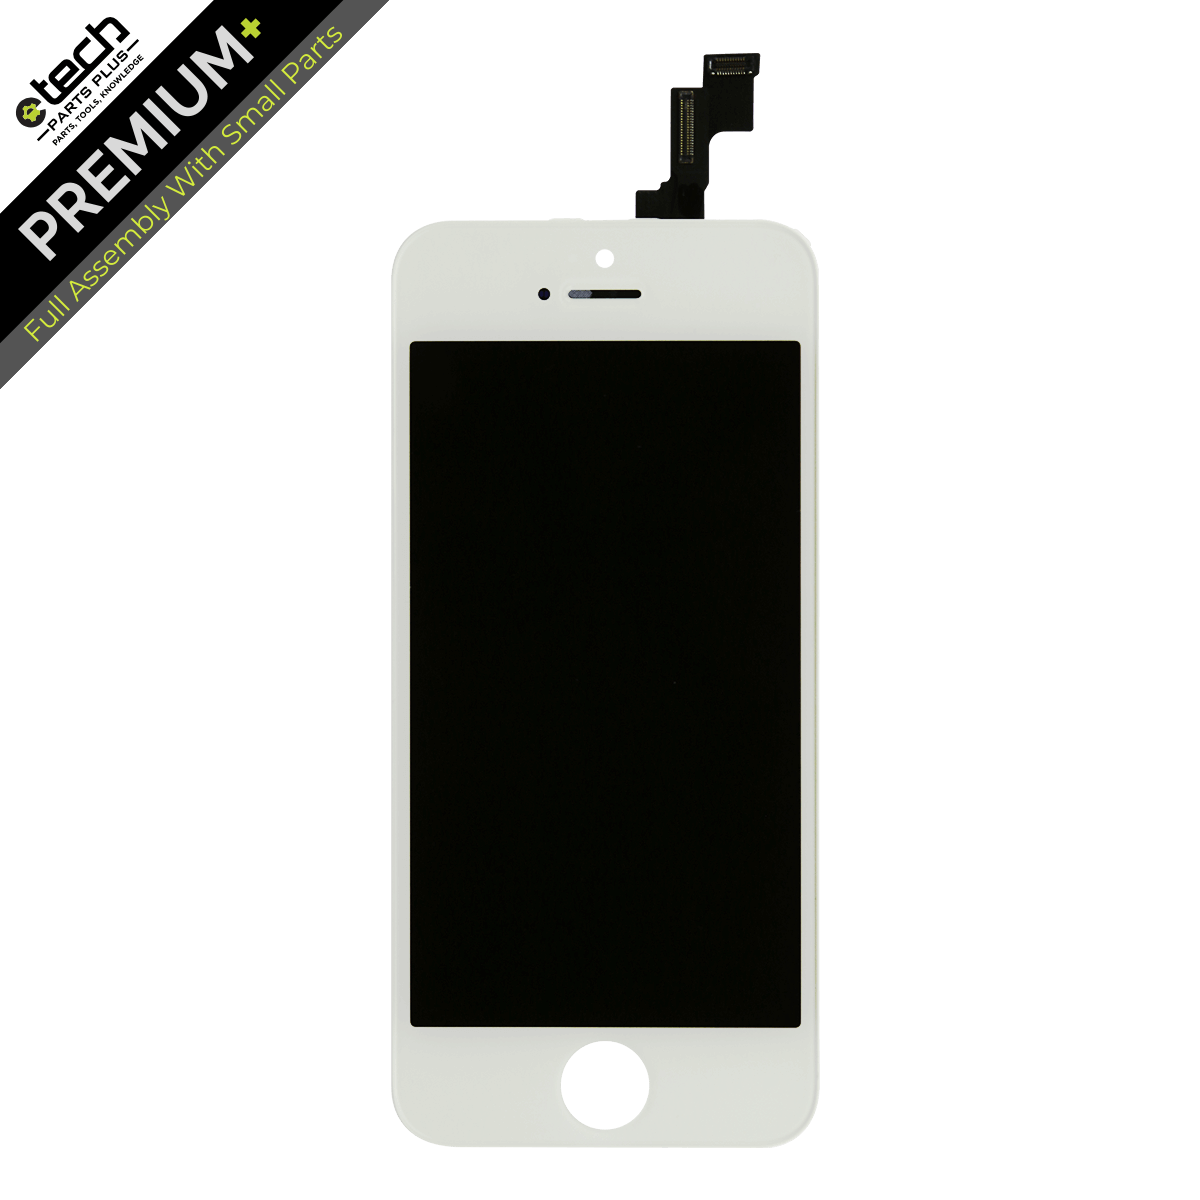 Iphone 5se download free clipart with a transparent.